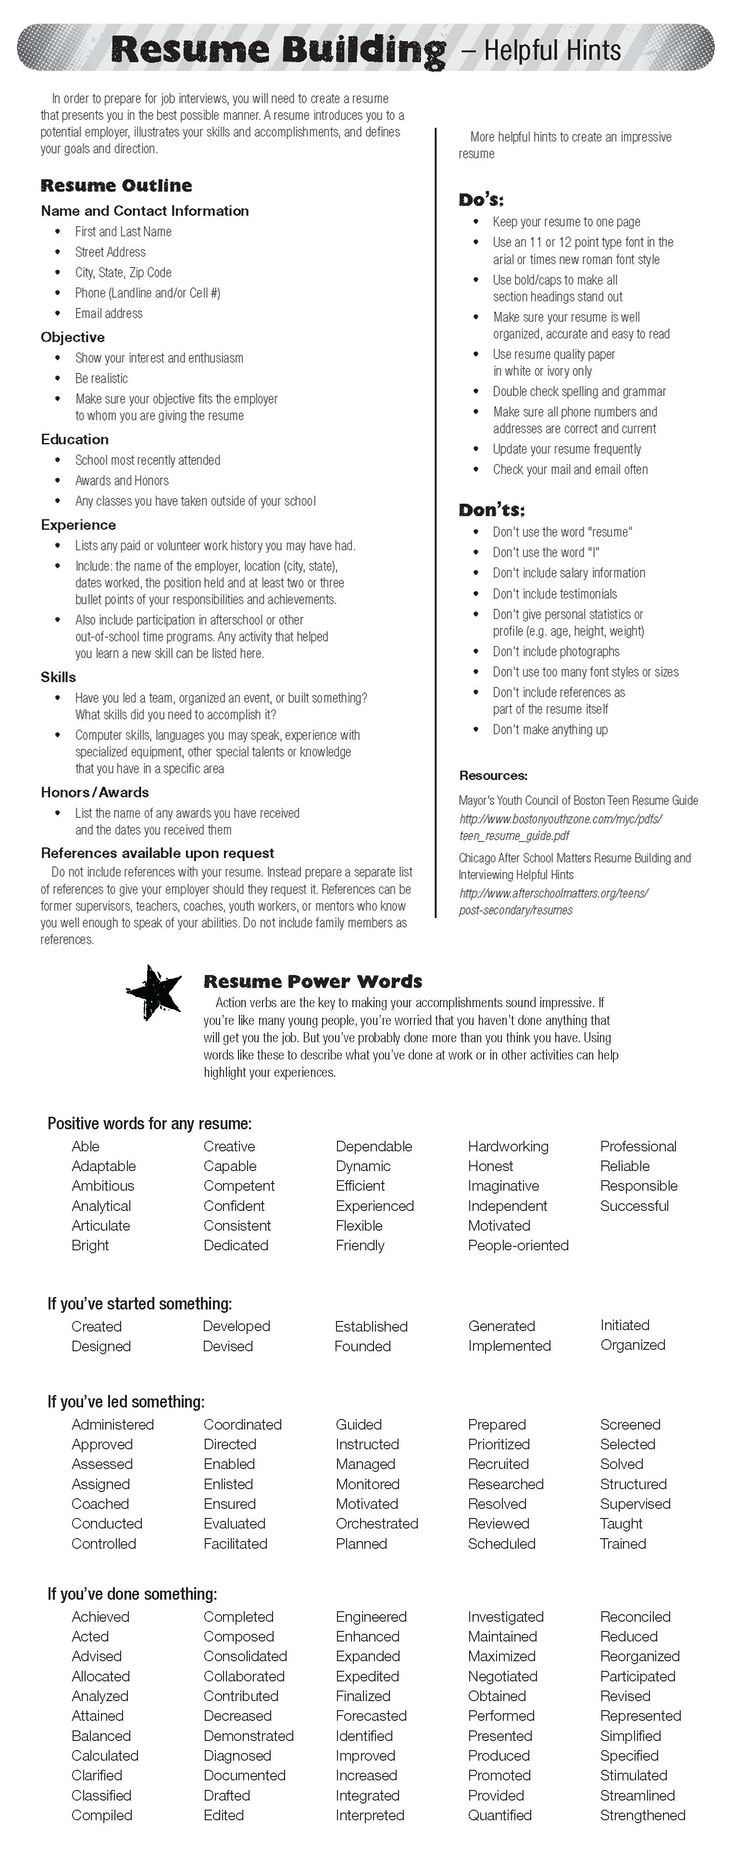 Opposenewapstandardsus  Personable  Ideas About Resume On Pinterest  Cv Format Resume Cv And  With Lovely  Ideas About Resume On Pinterest  Cv Format Resume Cv And Resume Templates With Amazing Executive Assistant Resume Objective Also Where To Post My Resume In Addition Downloadable Resume And Dental Assistant Resume Objectives As Well As Automotive Mechanic Resume Additionally College Student Resume Builder From Pinterestcom With Opposenewapstandardsus  Lovely  Ideas About Resume On Pinterest  Cv Format Resume Cv And  With Amazing  Ideas About Resume On Pinterest  Cv Format Resume Cv And Resume Templates And Personable Executive Assistant Resume Objective Also Where To Post My Resume In Addition Downloadable Resume From Pinterestcom